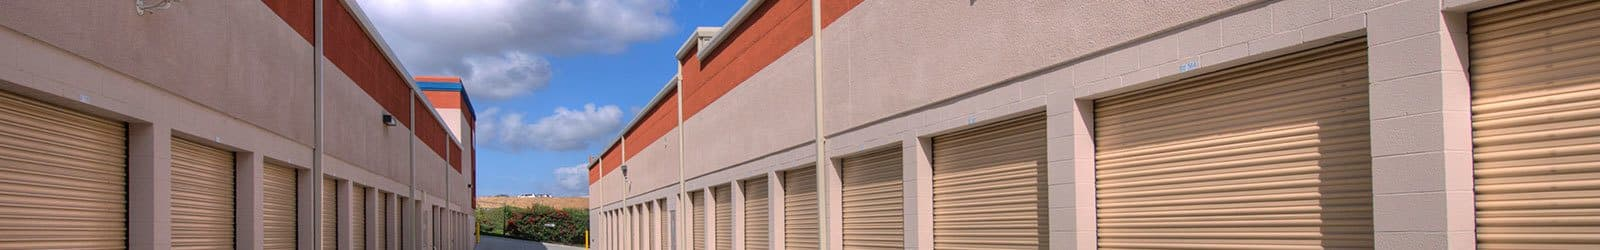 Get storage now at Carlsbad Self Storage in Carlsbad, CA